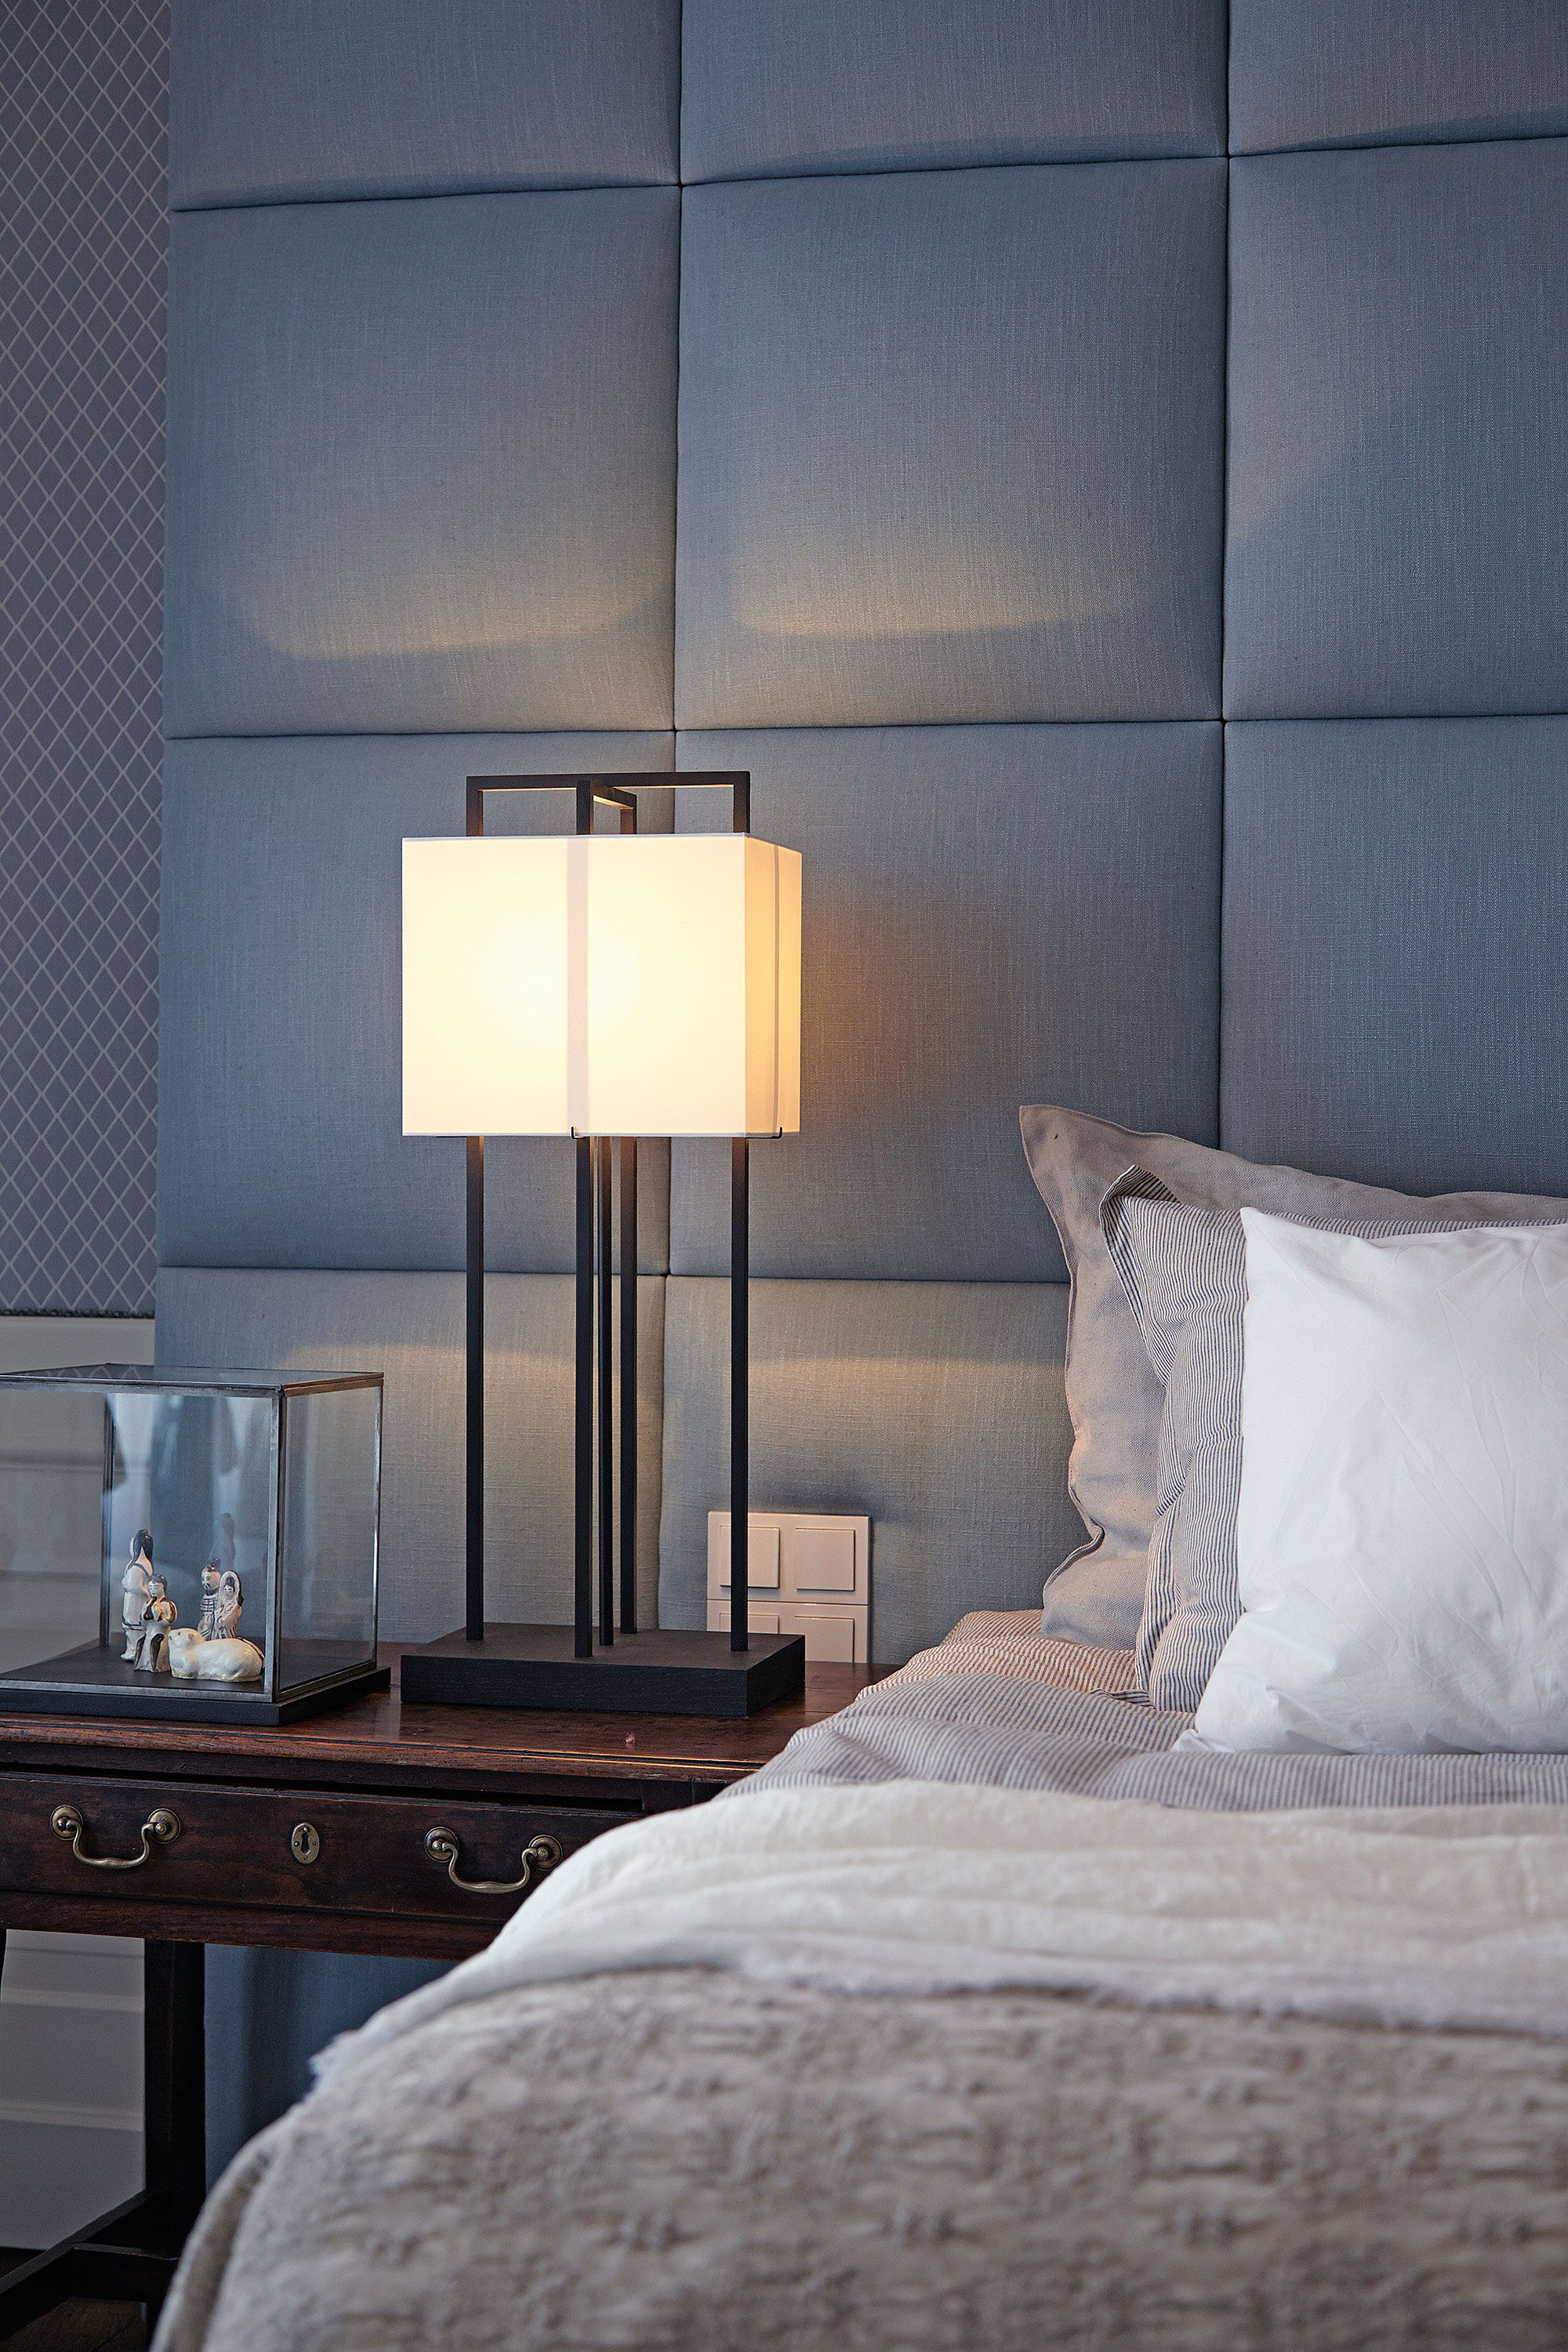 Luxe Slaapkamer Verlichting Colorful Mansion Light By Adje Bedroom Pinterest Luxe